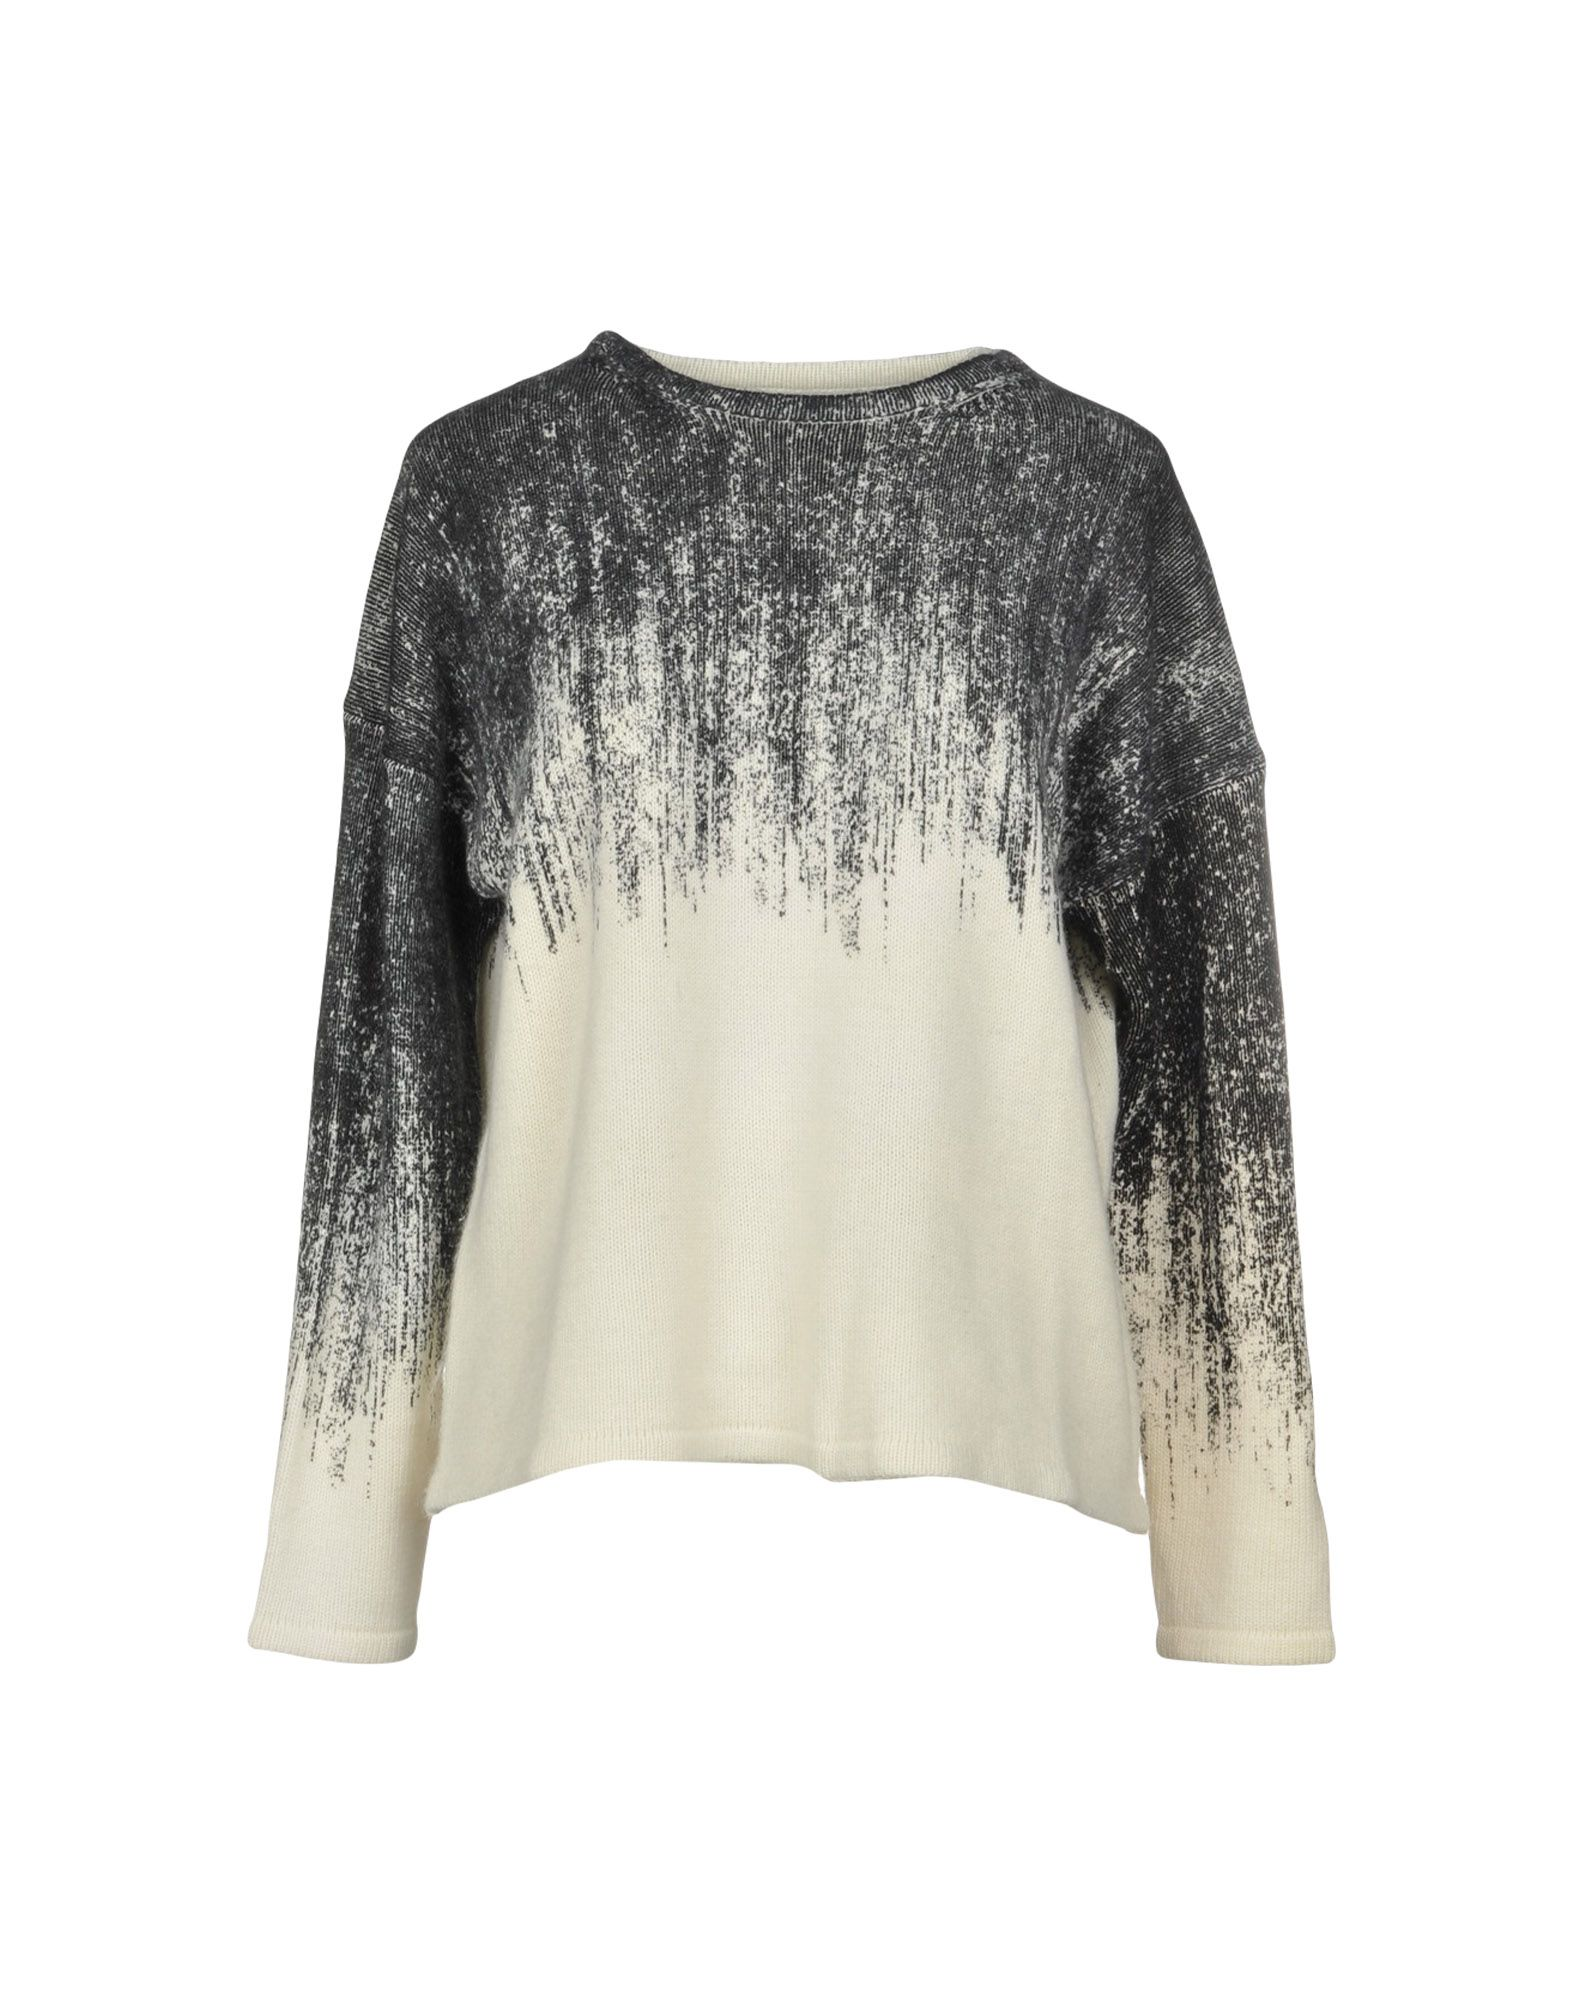 FINE COLLECTION Sweater in Ivory